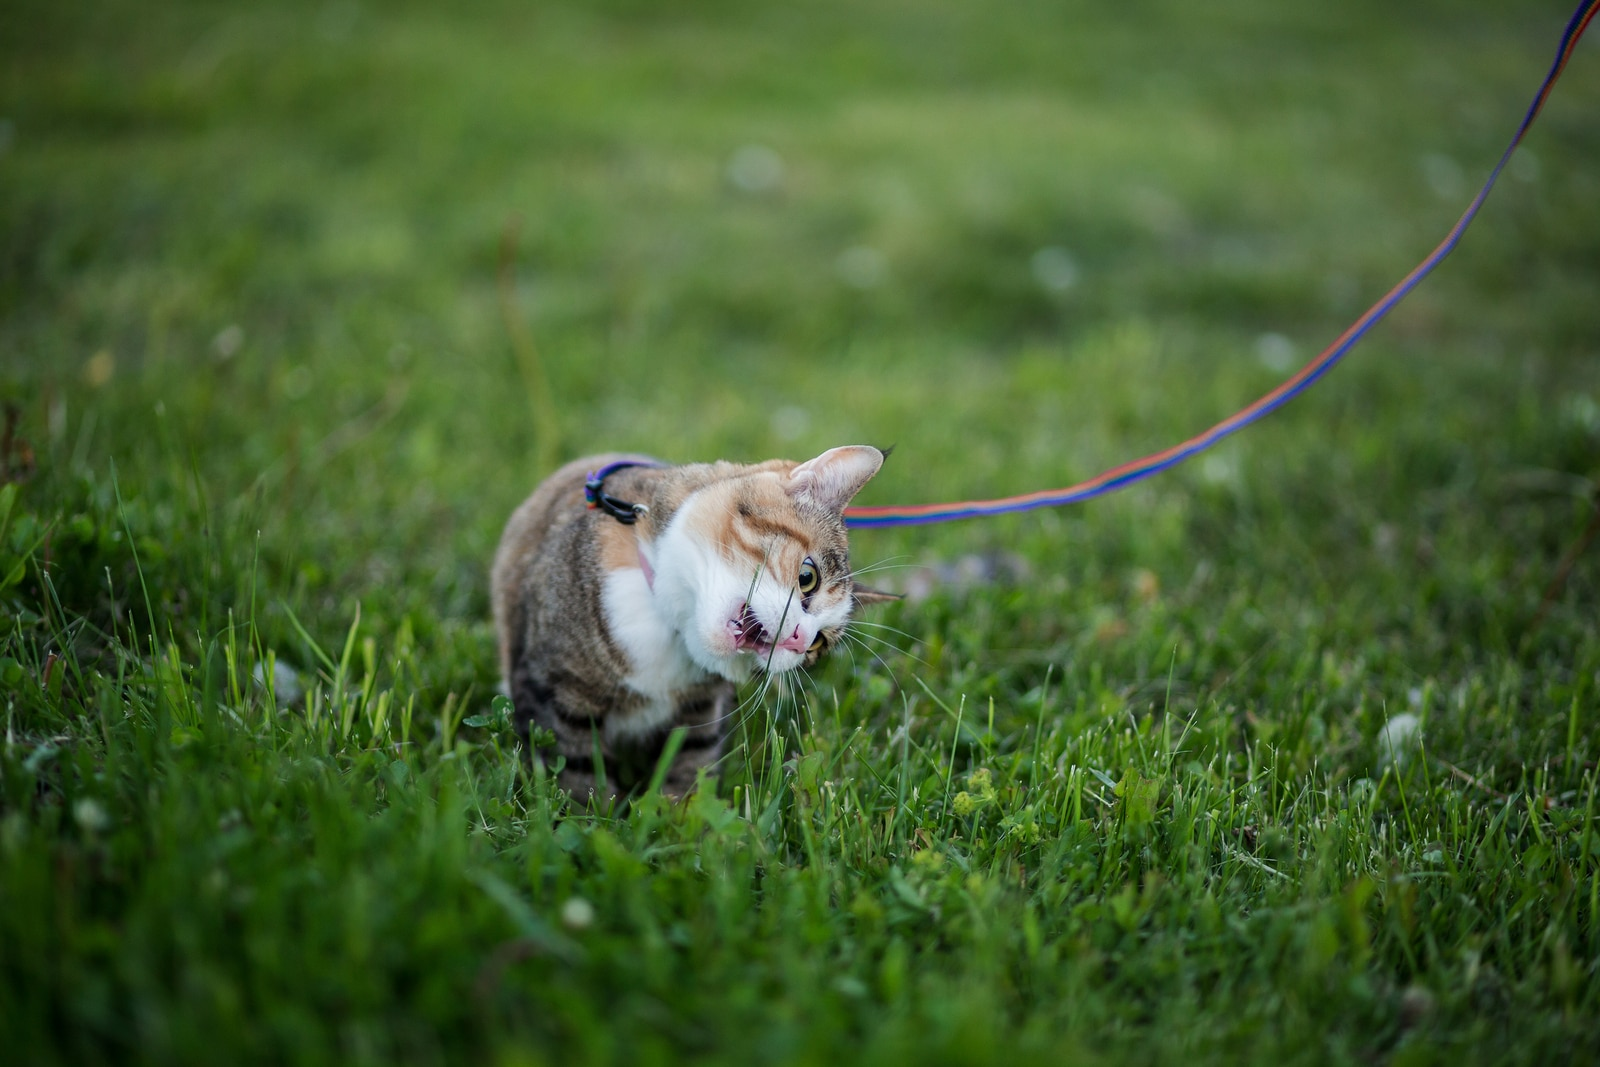 Tabby cat on a purple leash licking a blade of grass.